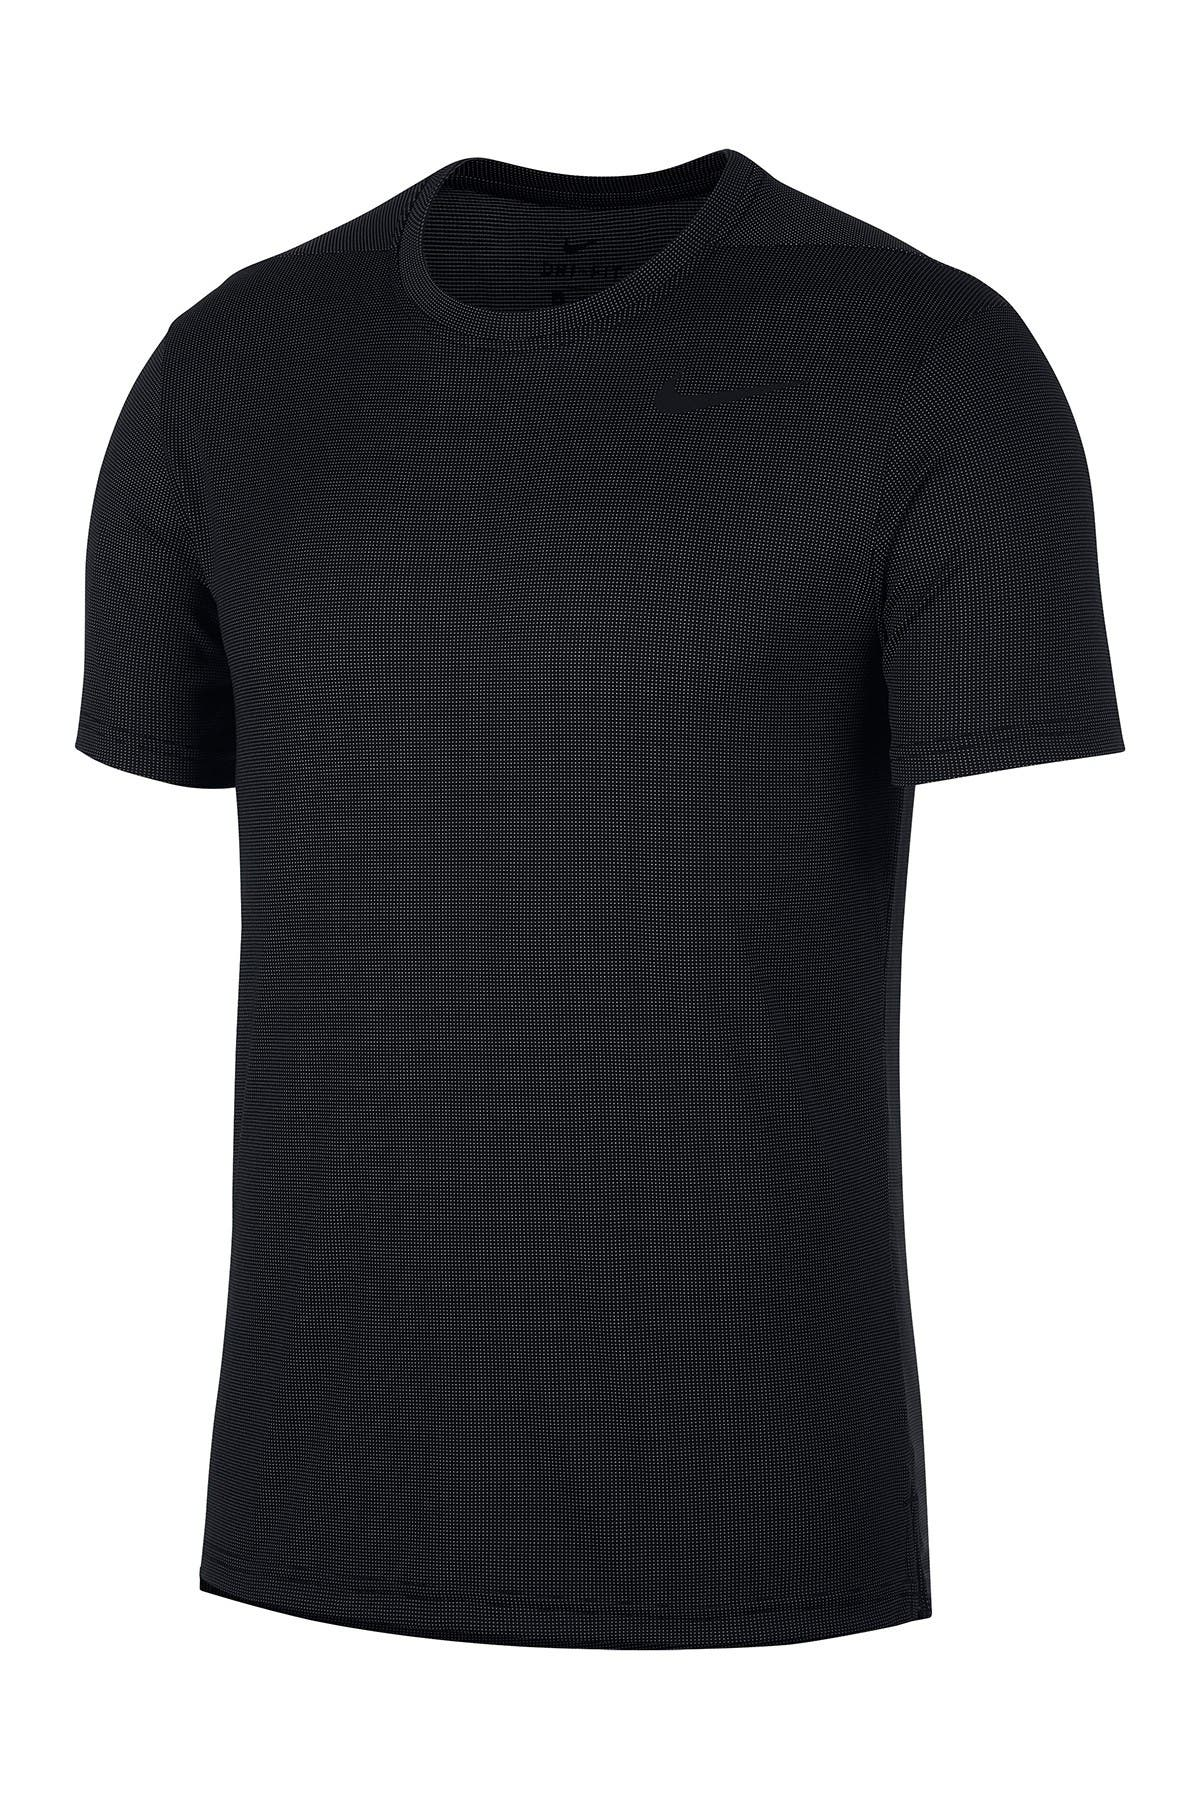 Image of Nike Superset Vented Crew Neck T-Shirt